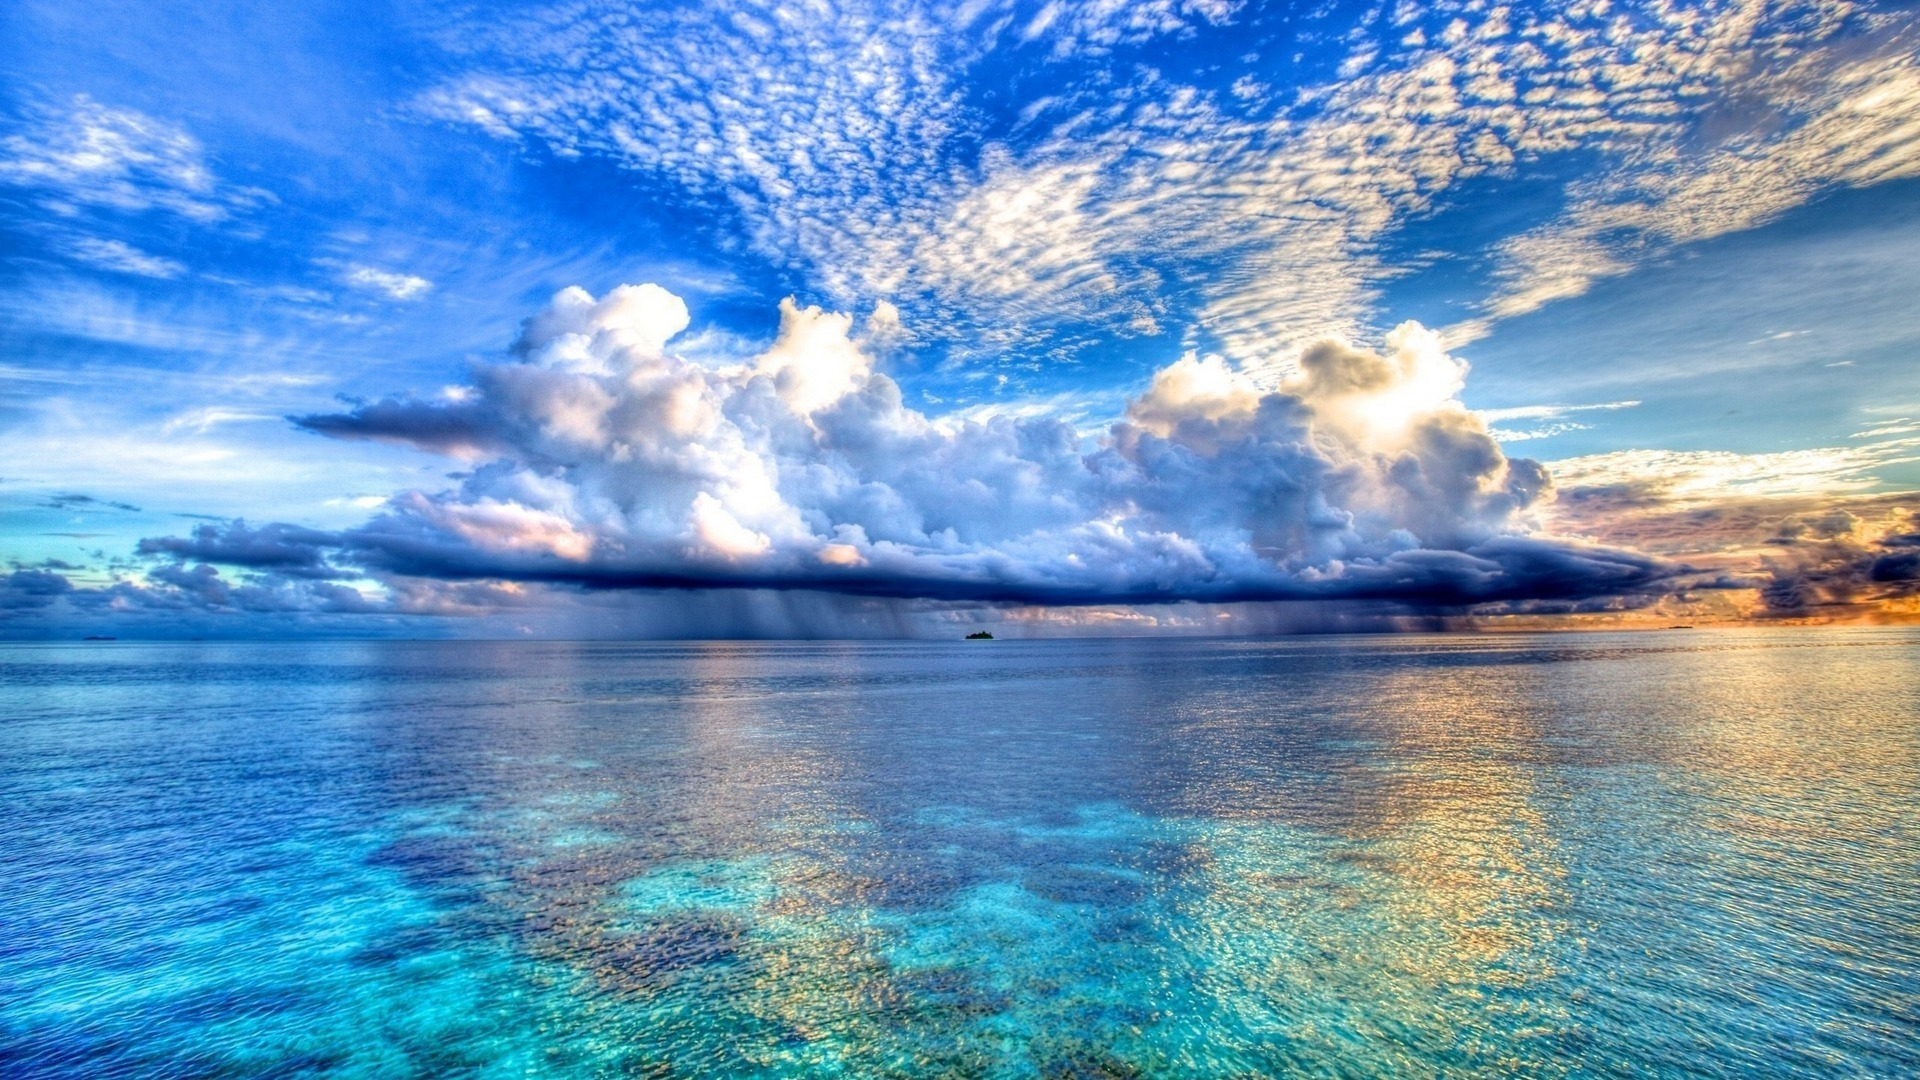 ocean hd wallpapers